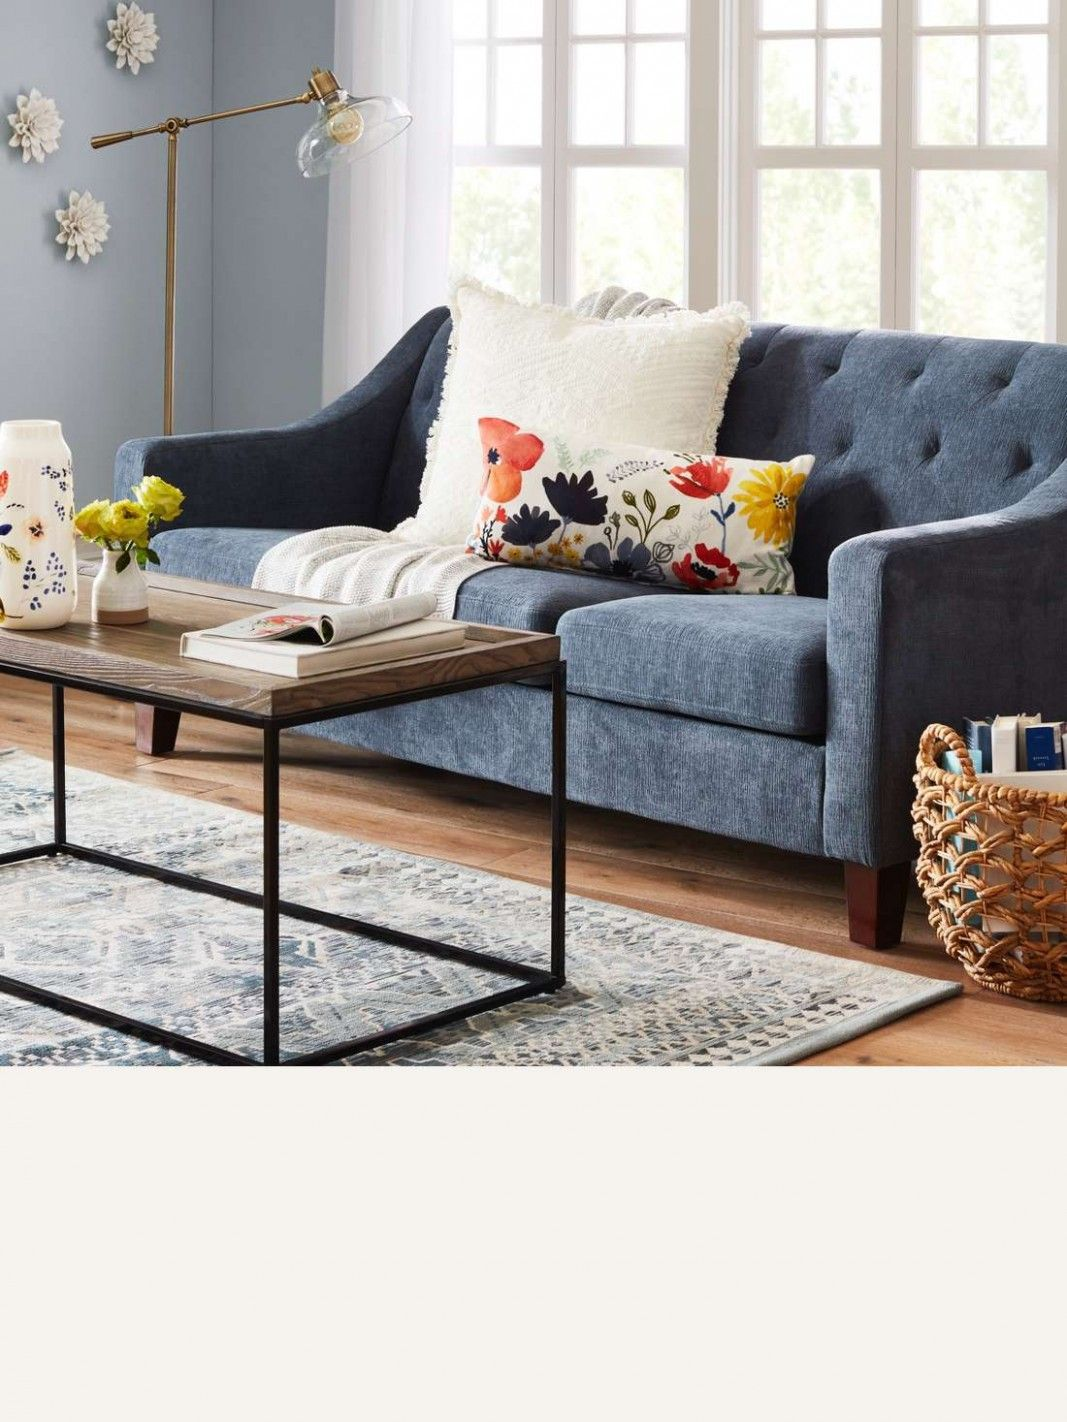 The Ten Secrets About Sofa Sets For Living Room Near Me Only A Handful Of People Know Dengan Gambar